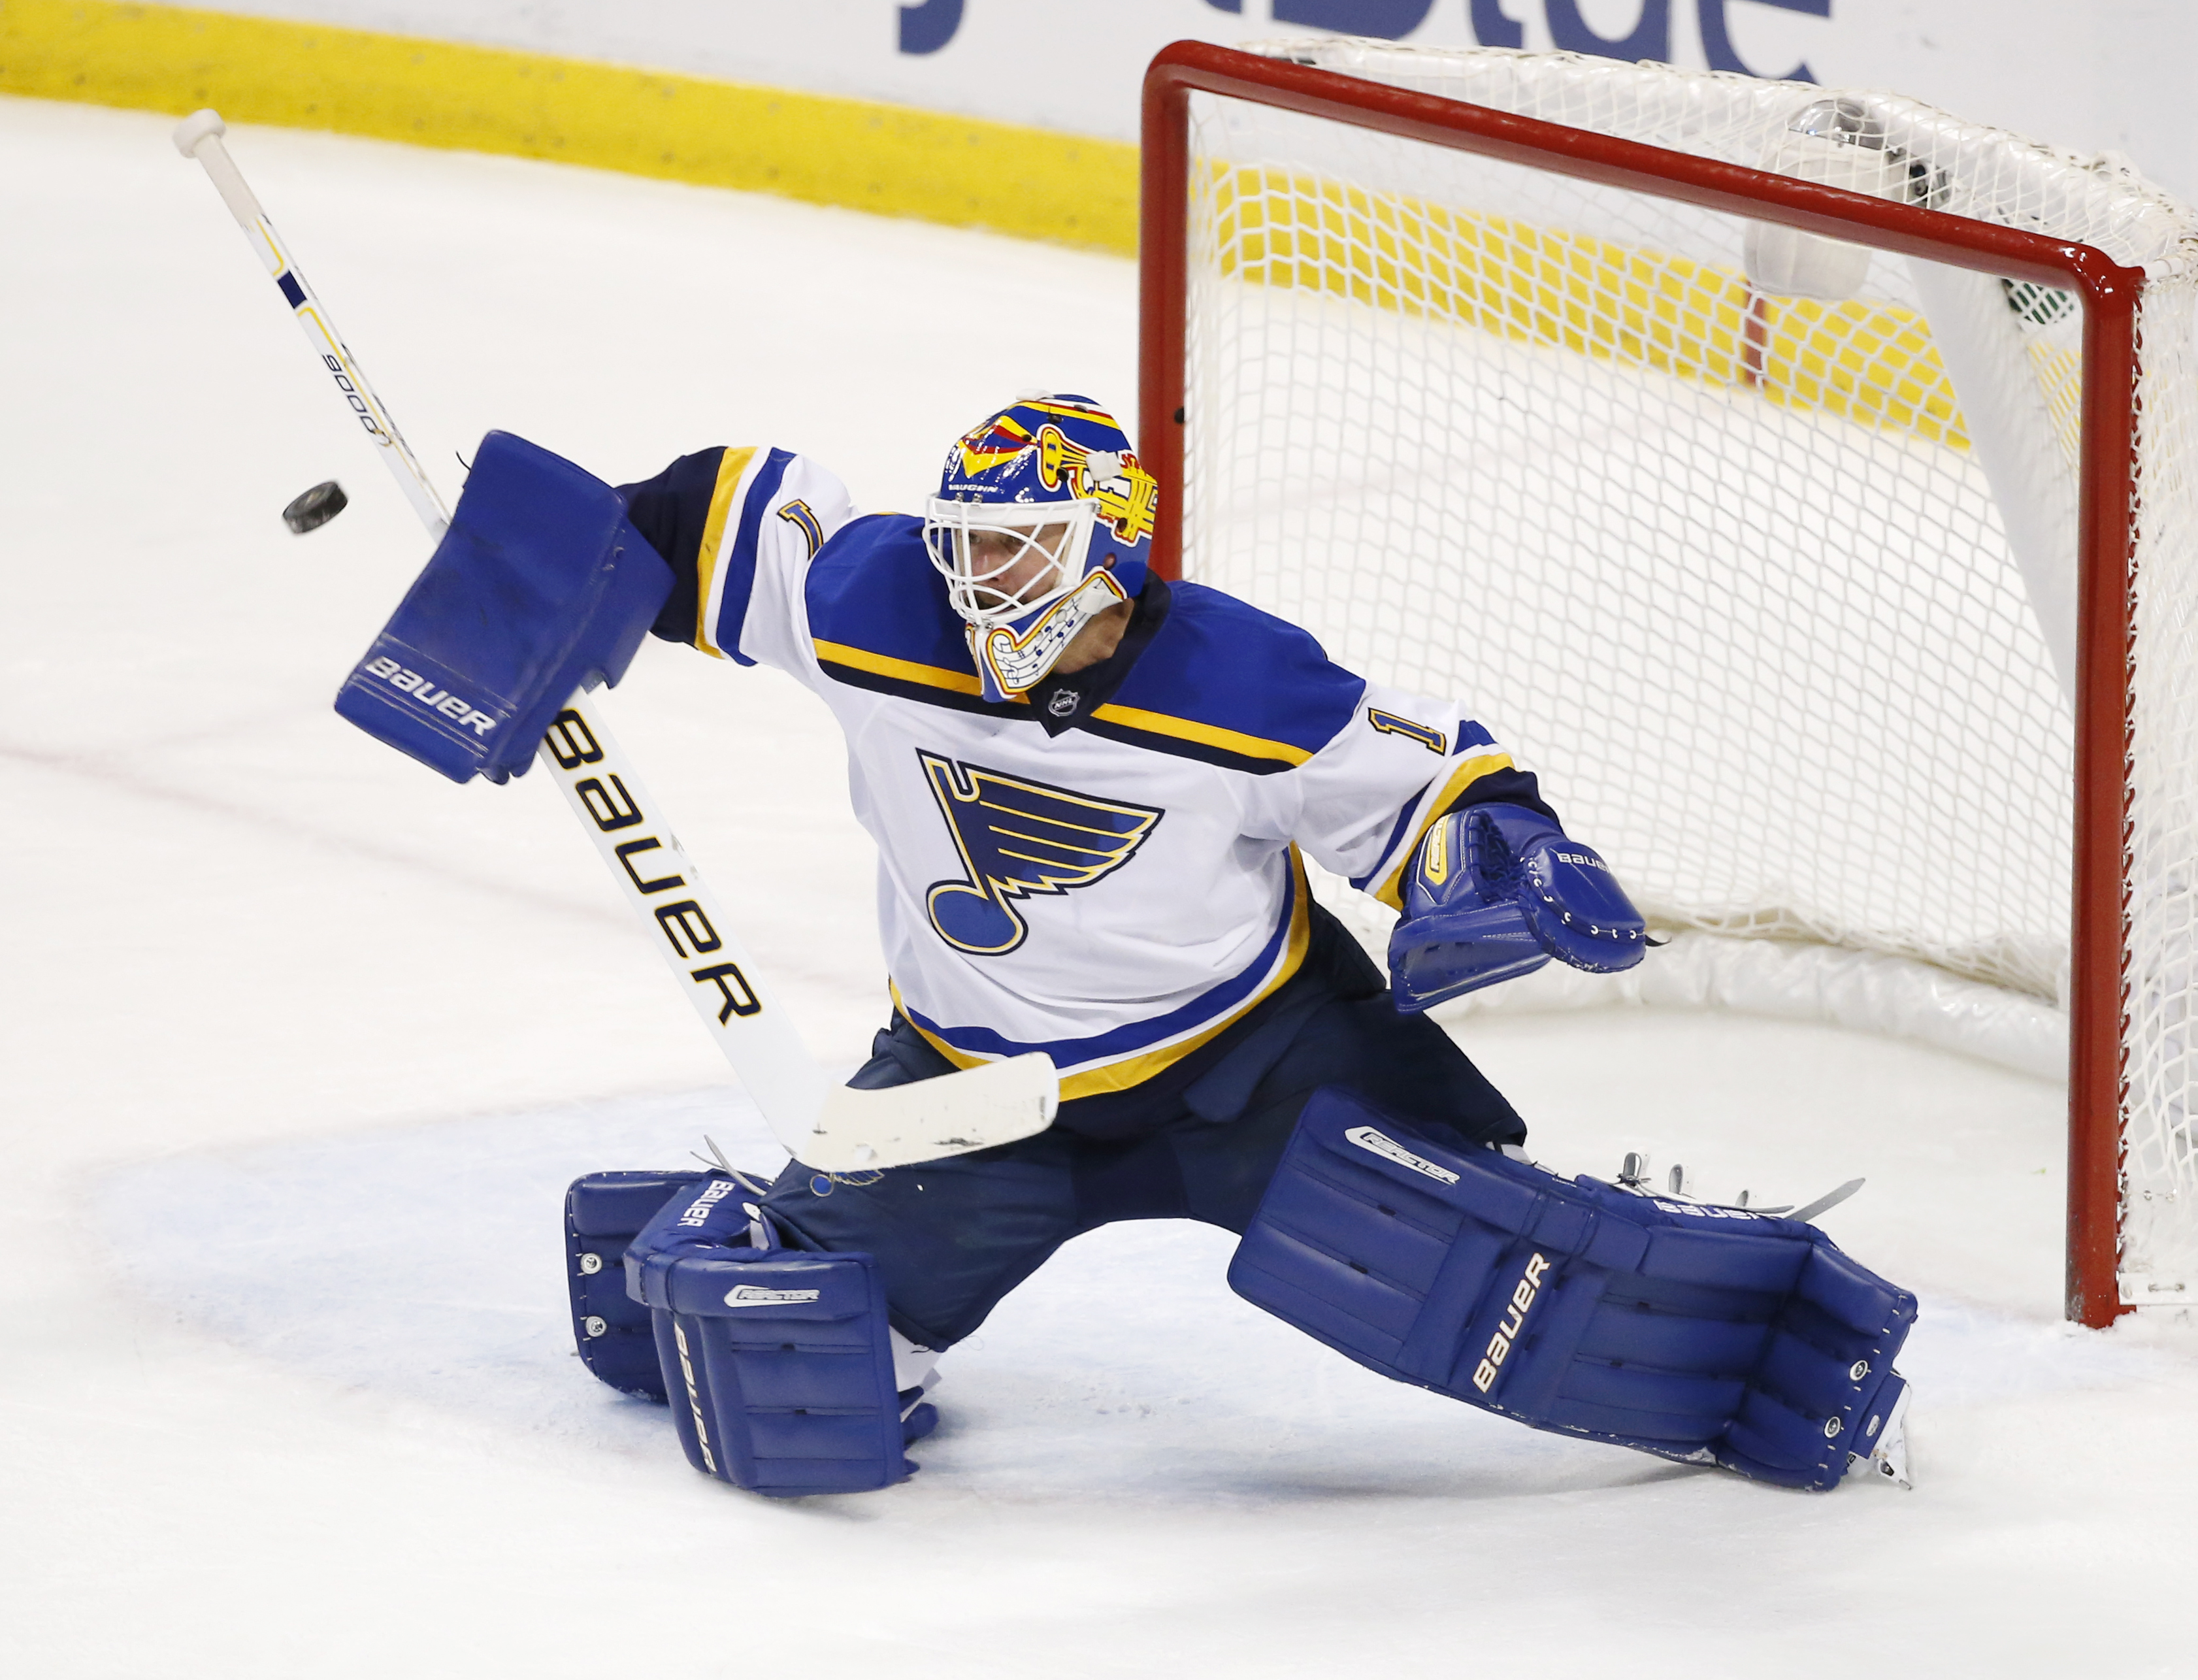 St. Louis Blues goalie Brian Elliott (1) deflects a shot during the second period of an NHL hockey game against the Florida Panthers, Friday, Feb. 12, 2016, in Sunrise, Fla. (AP Photo/Wilfredo Lee)